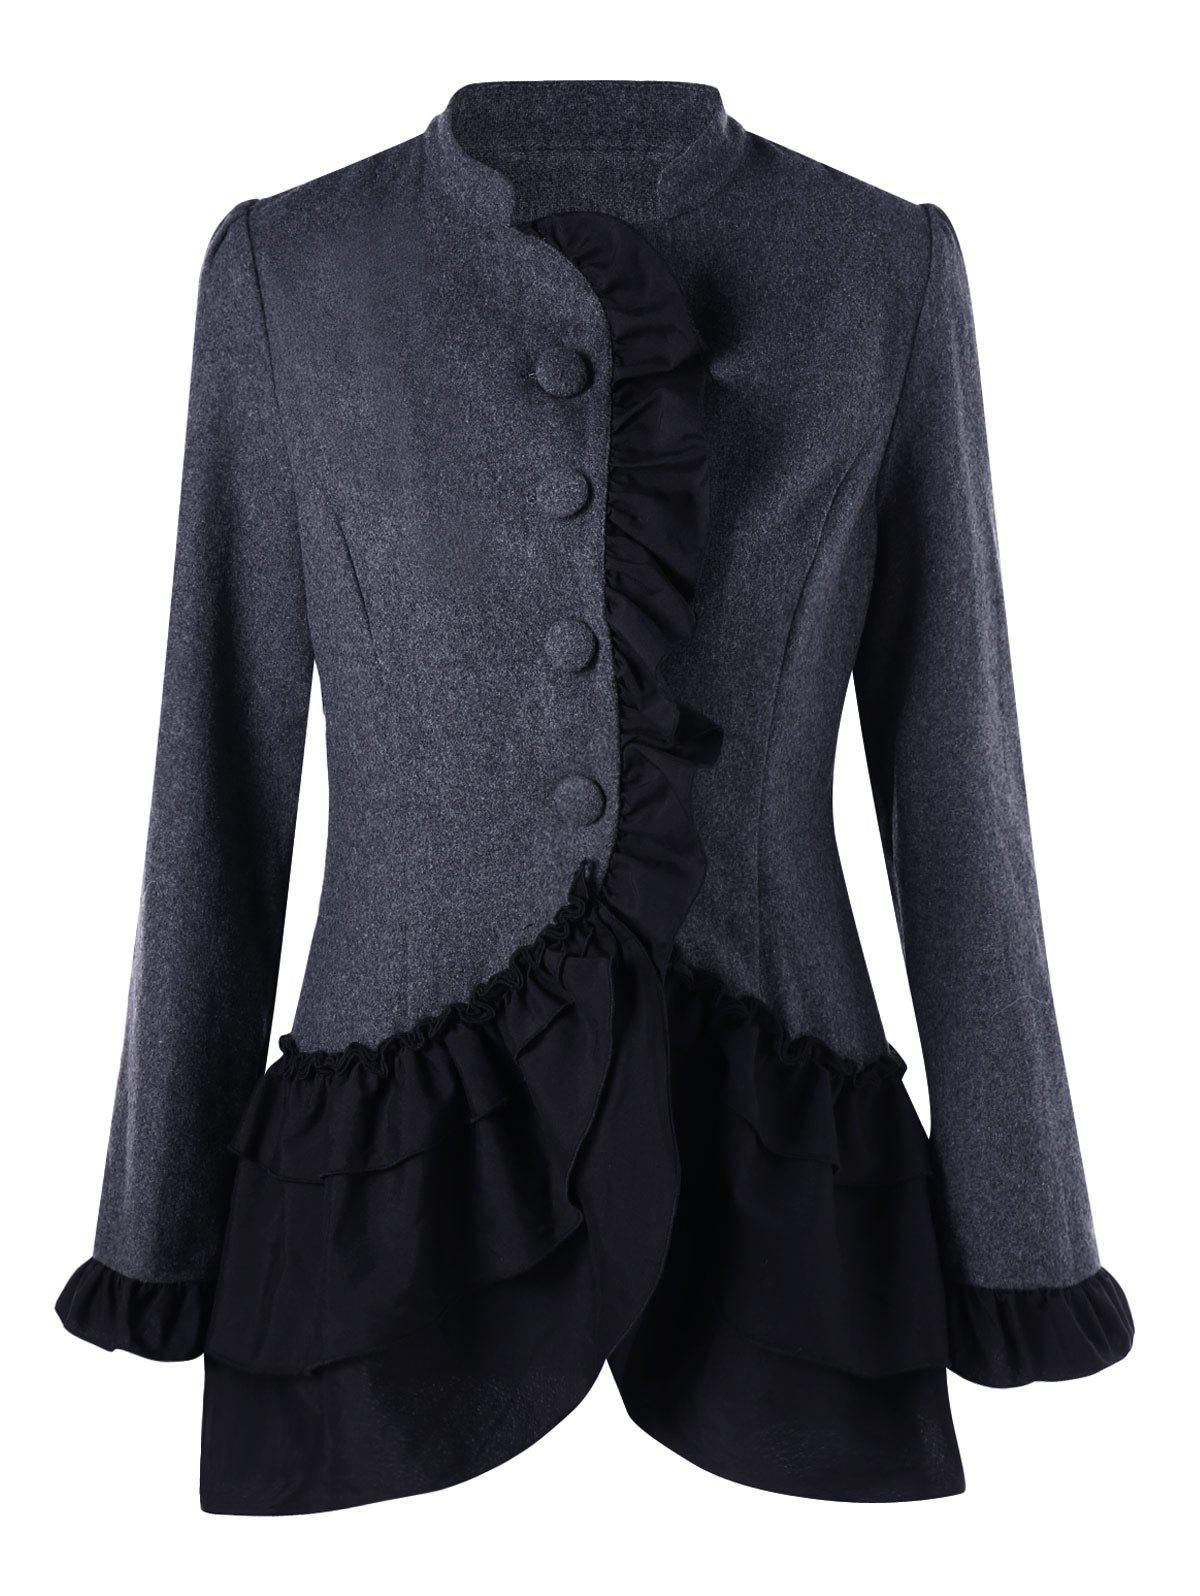 Hot Ruffle Trim Layered Coat